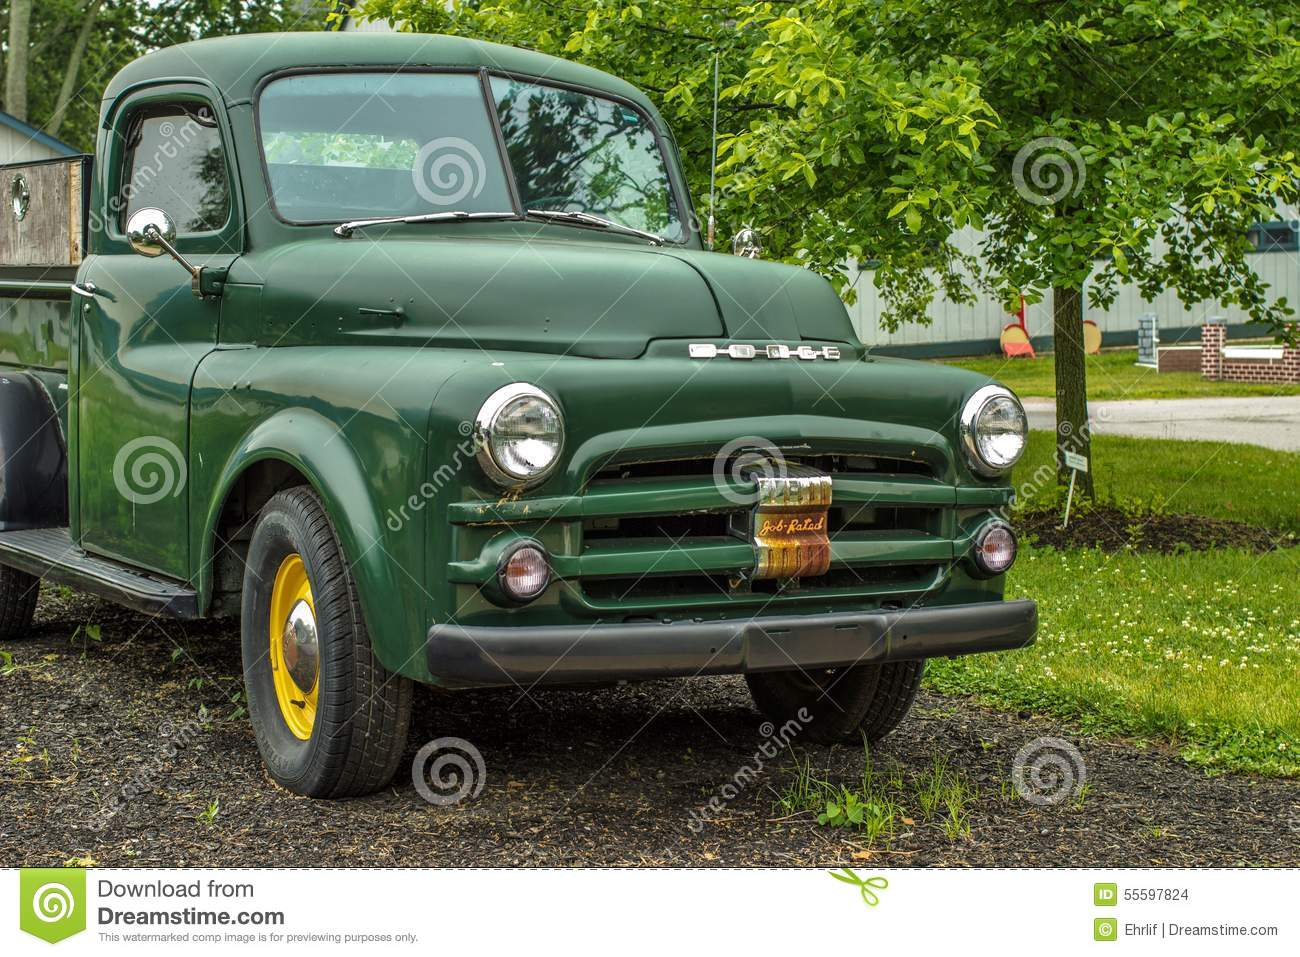 Used Dodge Lexington >> Vintage Dodge Pick Up Truck Editorial Stock Image - Image: 55597824